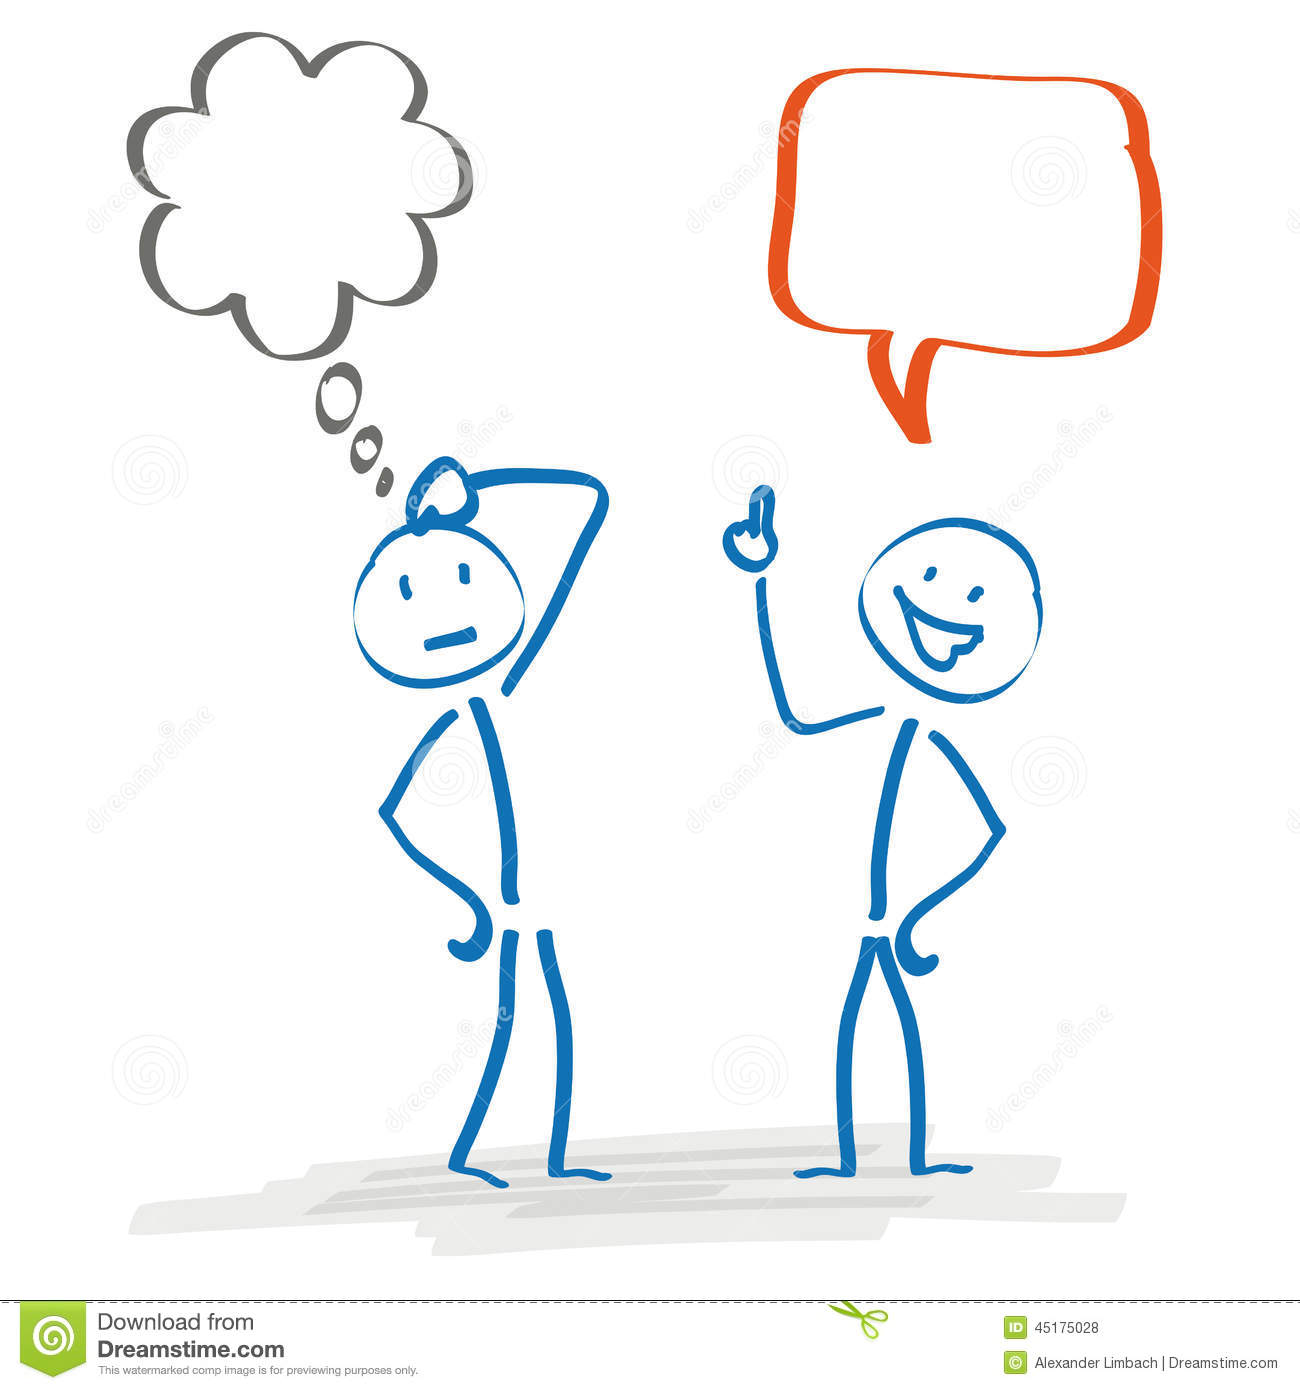 Stickman 2 Thought And Speech Bubble Stock Vector - Image: 45175028